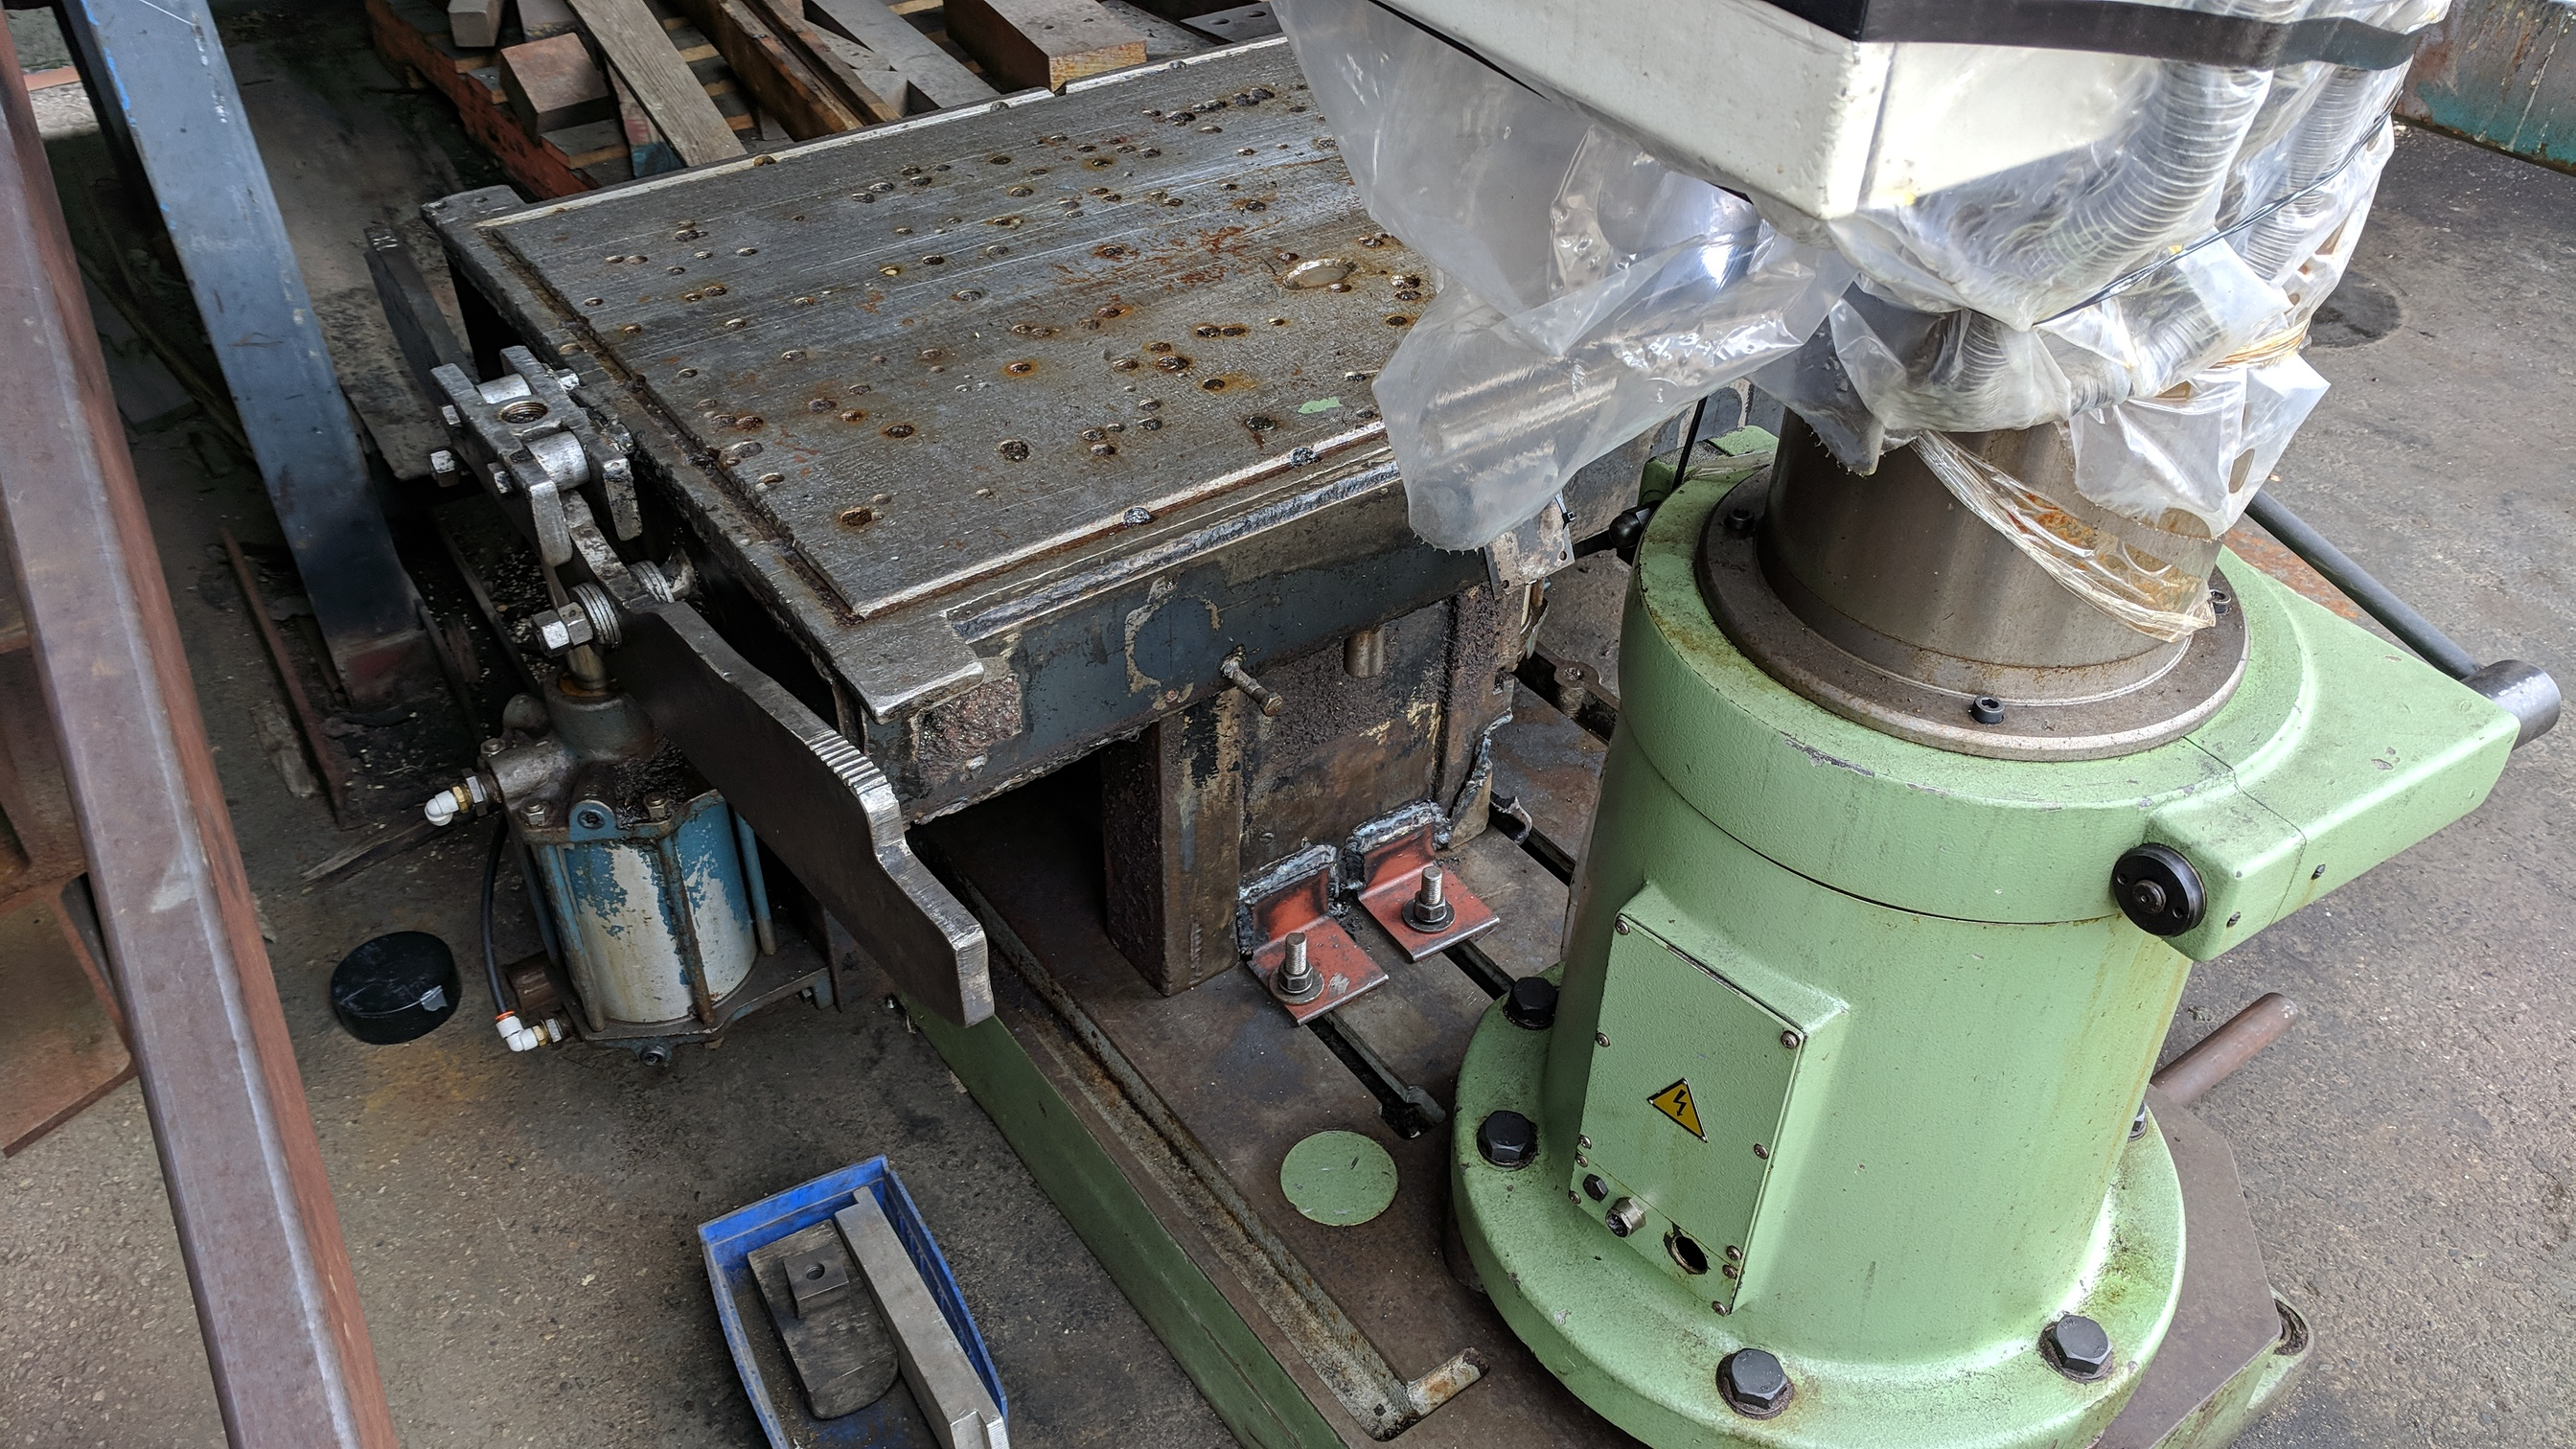 """MAS (1998) VO32 40"""" RADIAL ARM DRILL WITH 10"""" COLUMN, SPEEDS TO 2890 RPM, 3 HP, S/N 2663 (CI) - Image 7 of 7"""